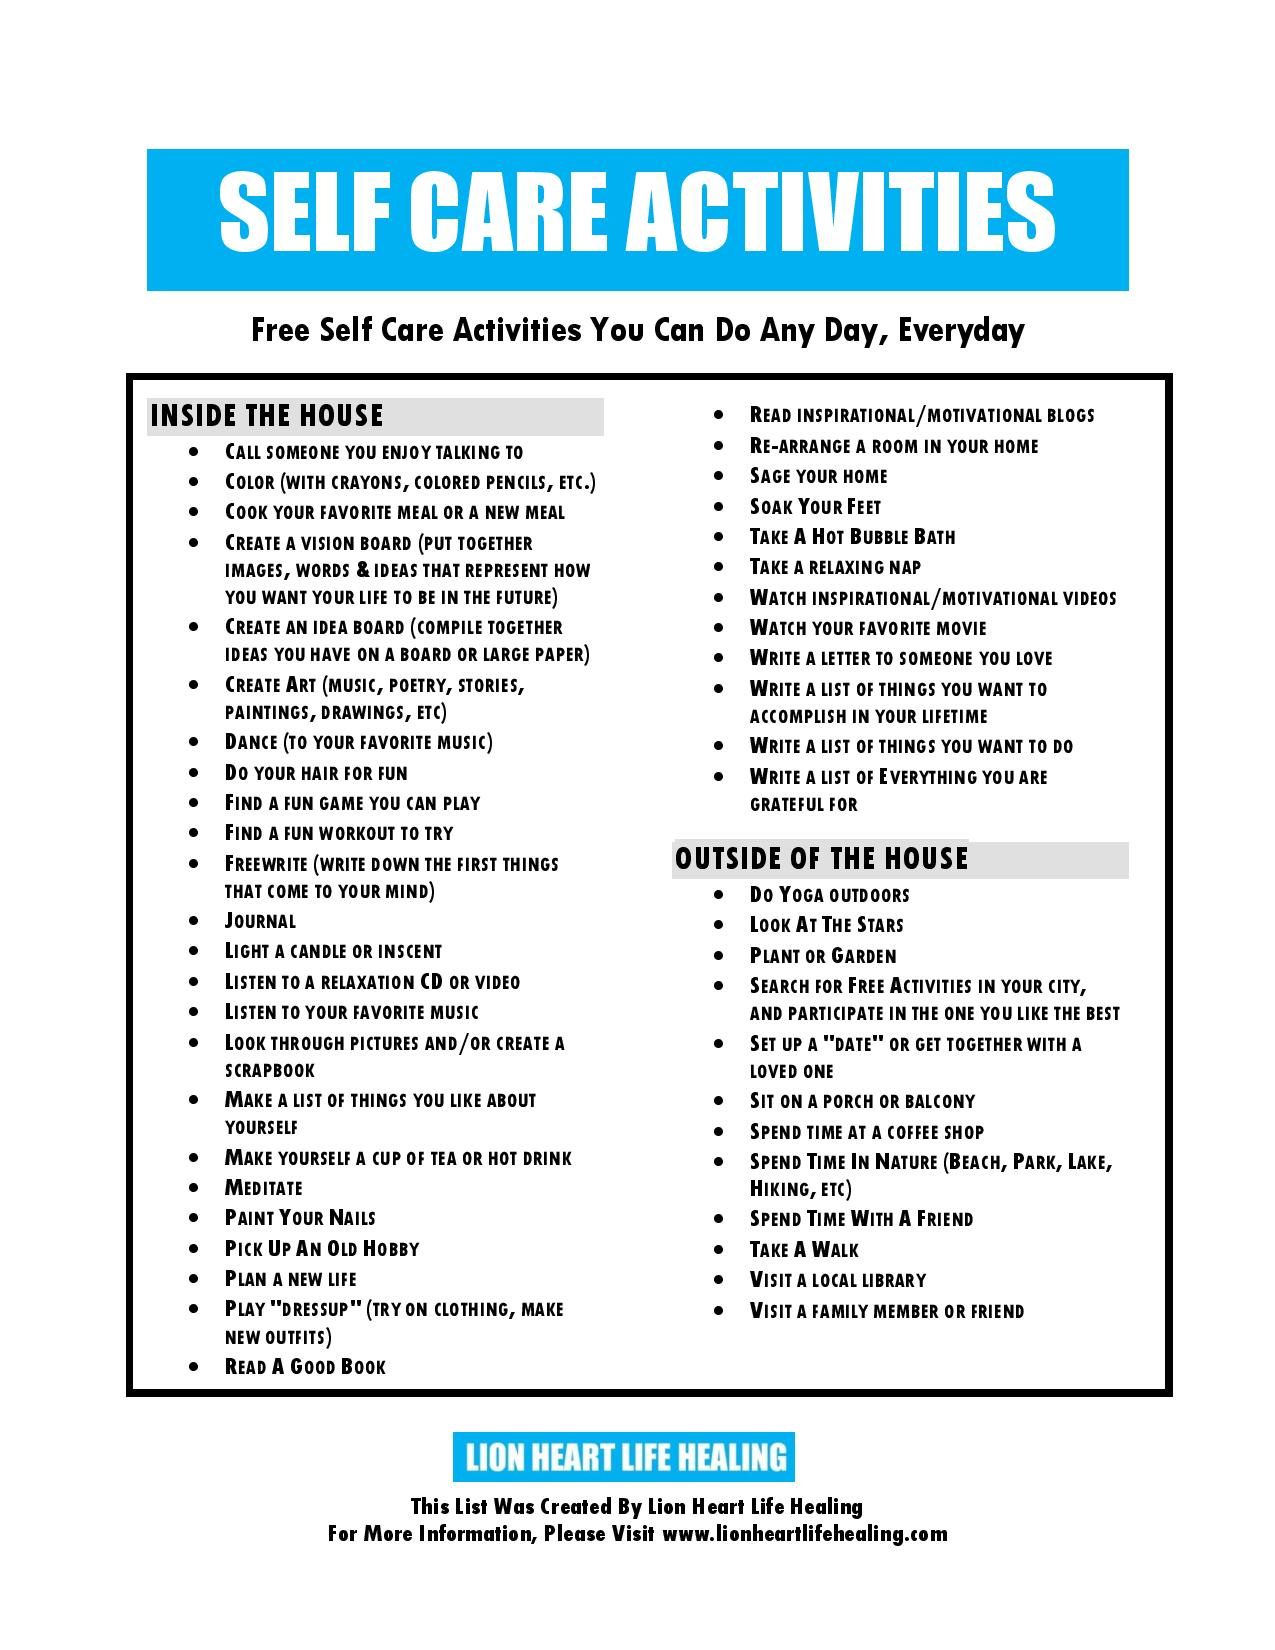 Worksheets Self Care Worksheets life healing worksheets handouts lion heart self care activities lhlh image